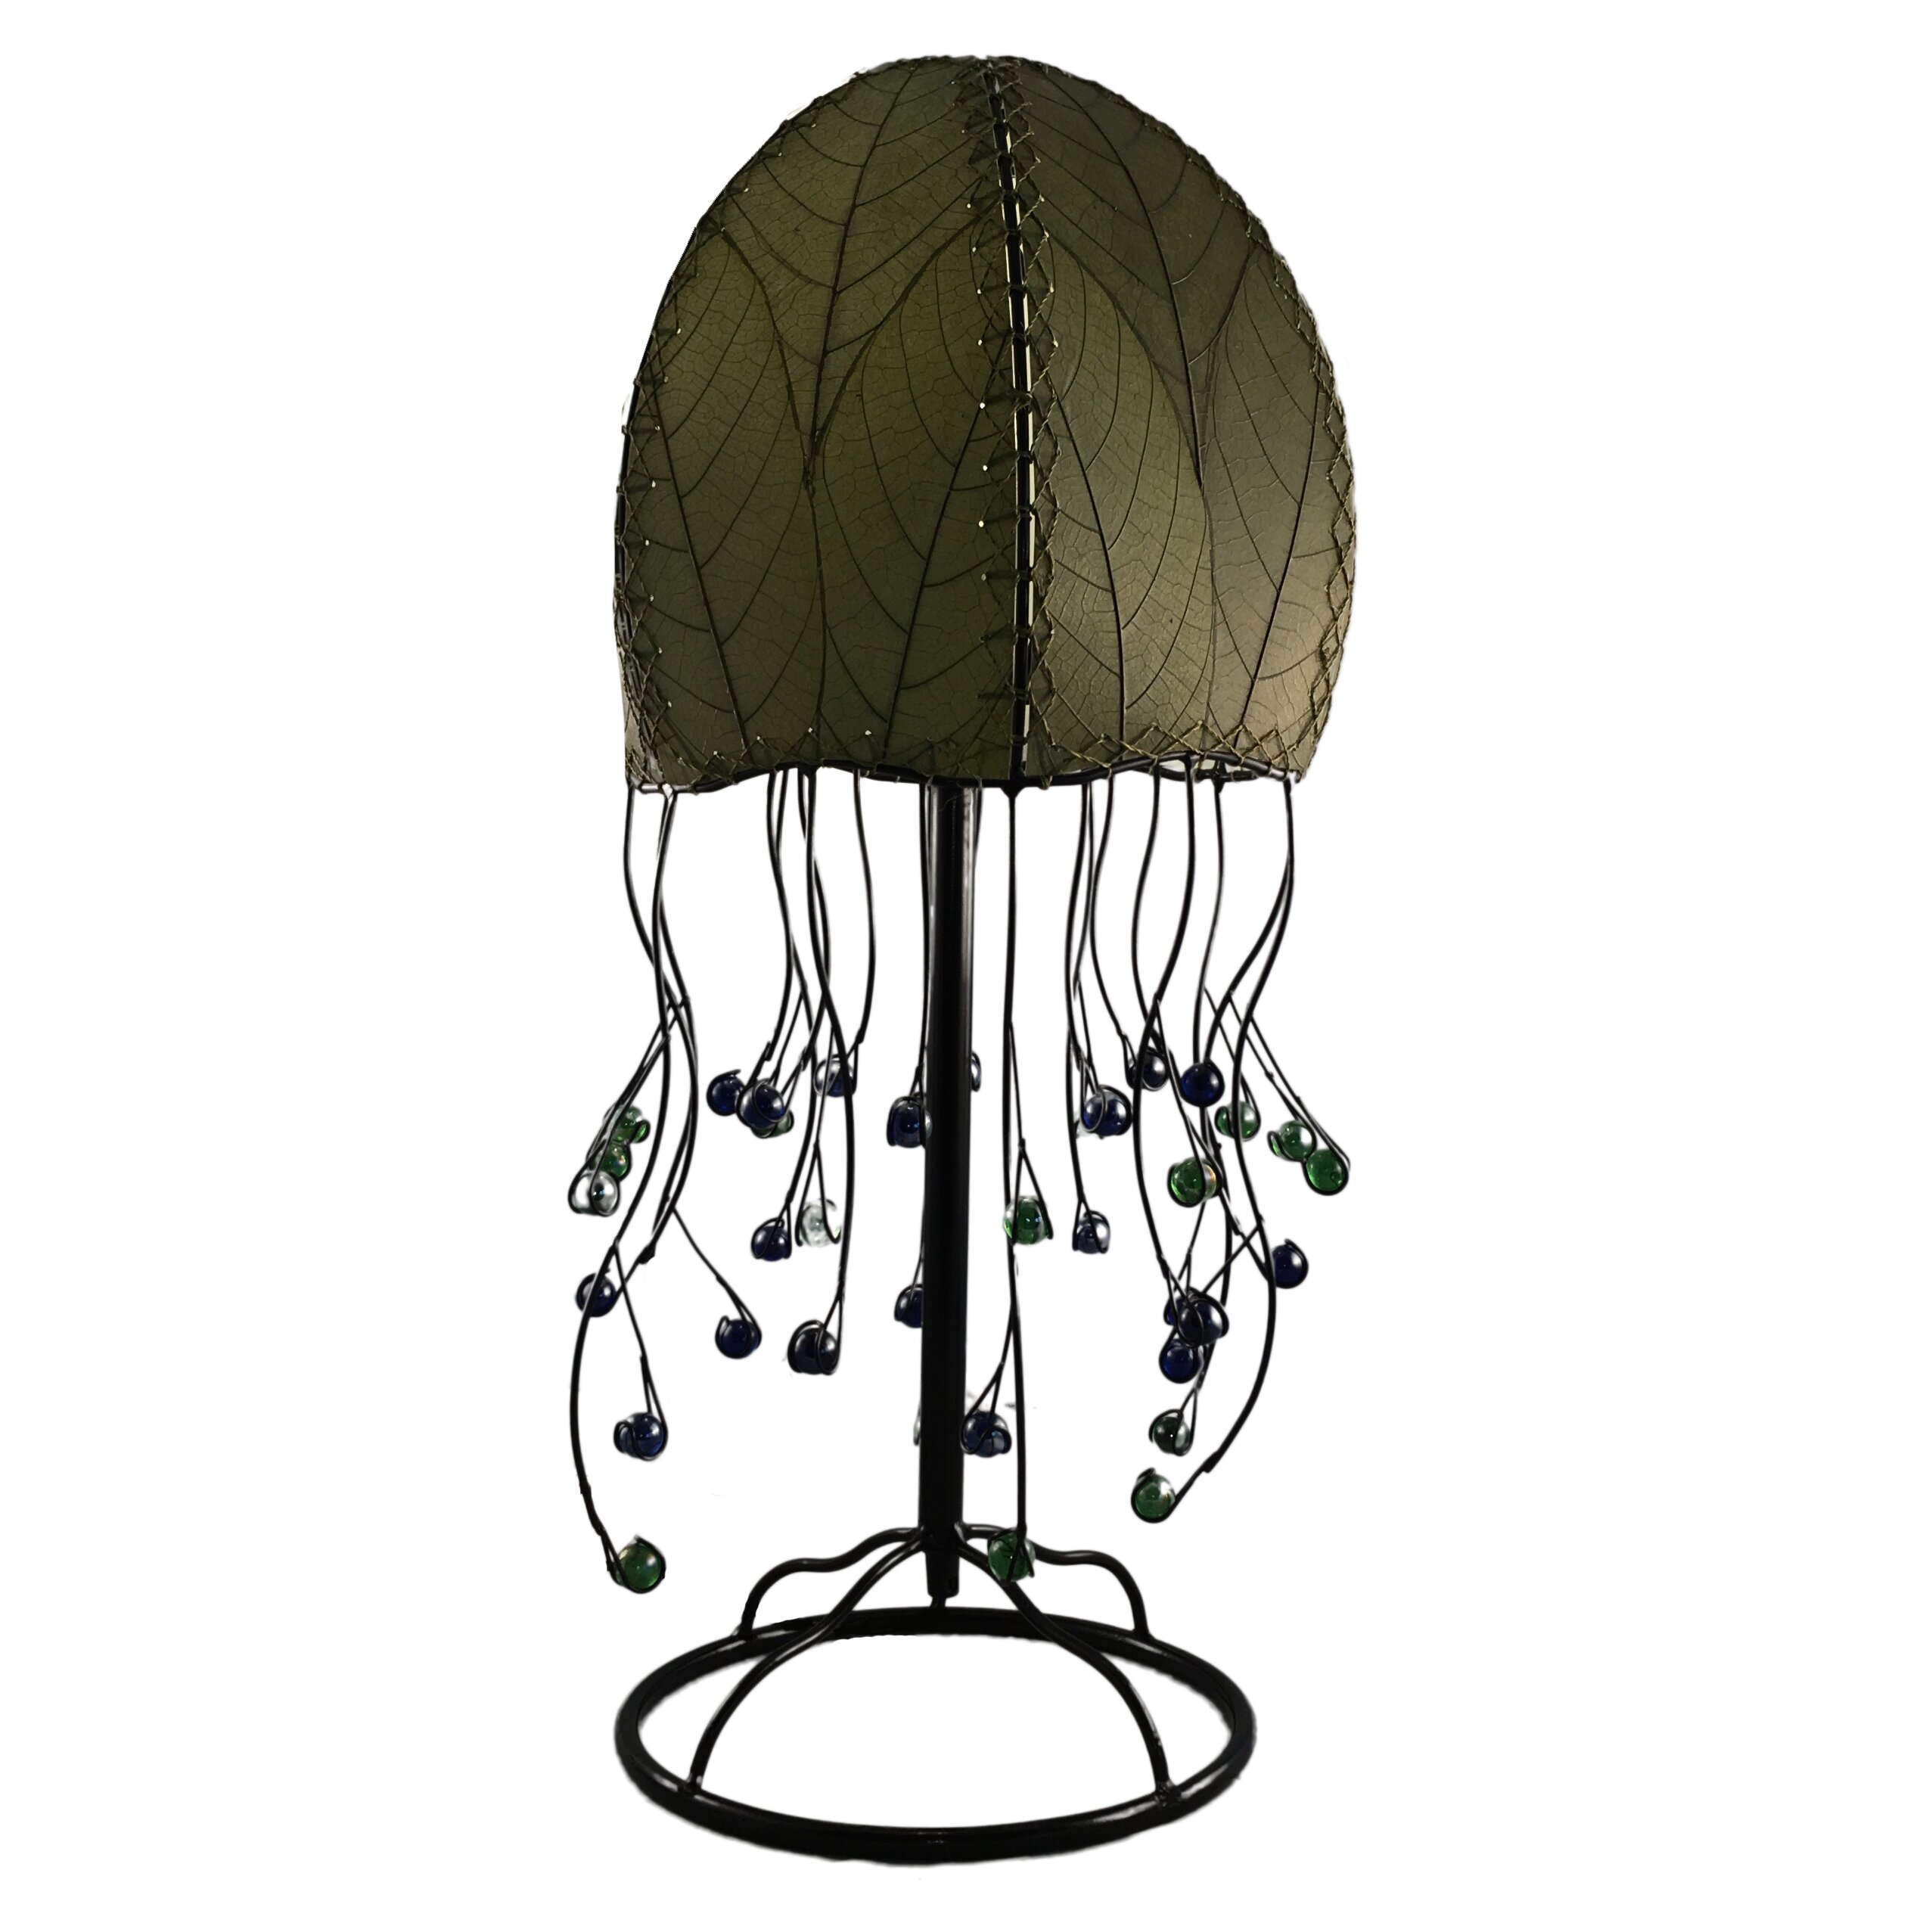 Eangee Home Design Jellyfish 24 Table Lamp